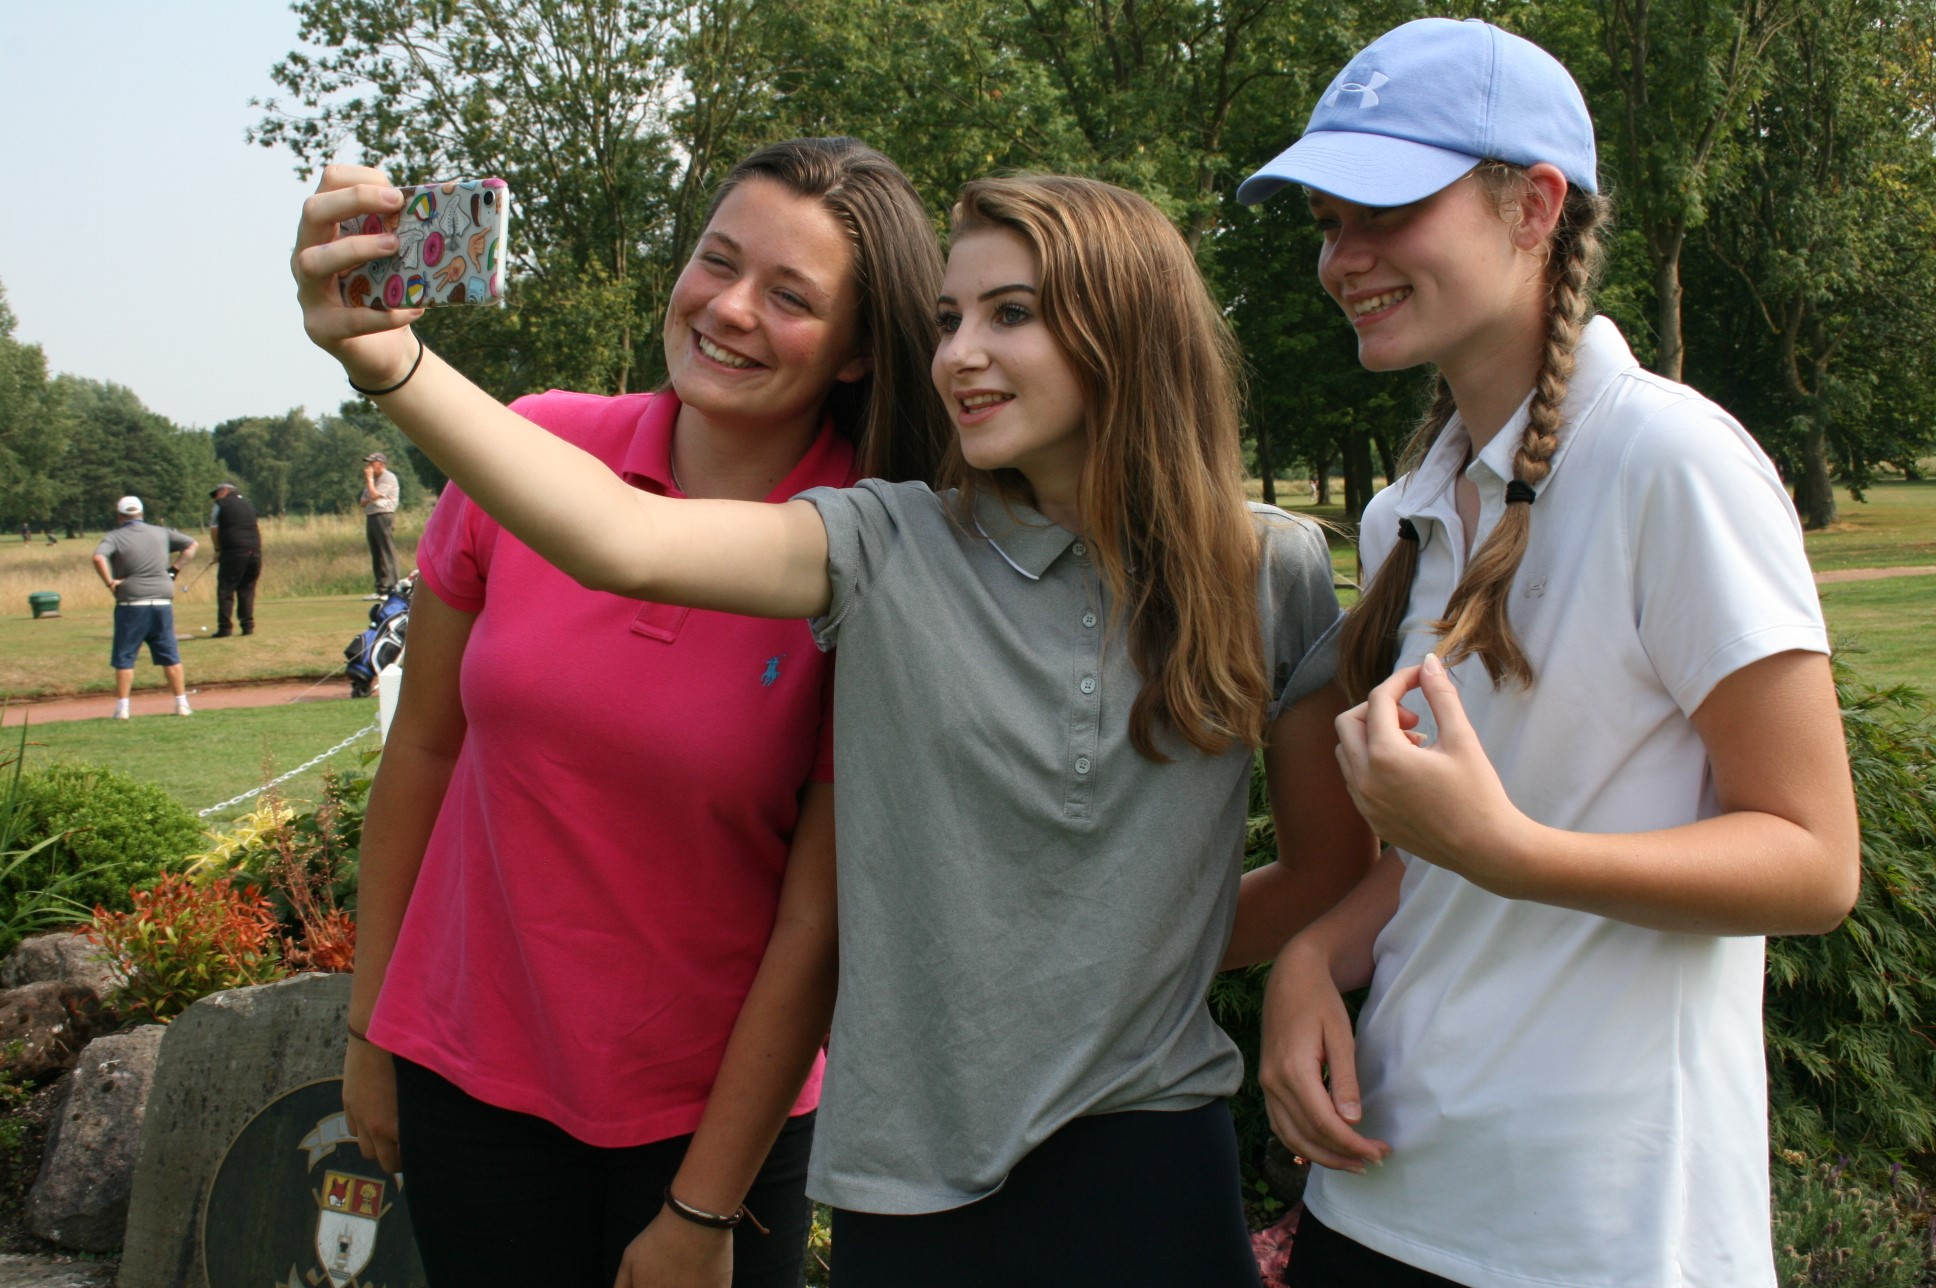 Women and Girls Golf Week: Three Cheshire girls who got together through Girls Golf Rocks are heading to a national final